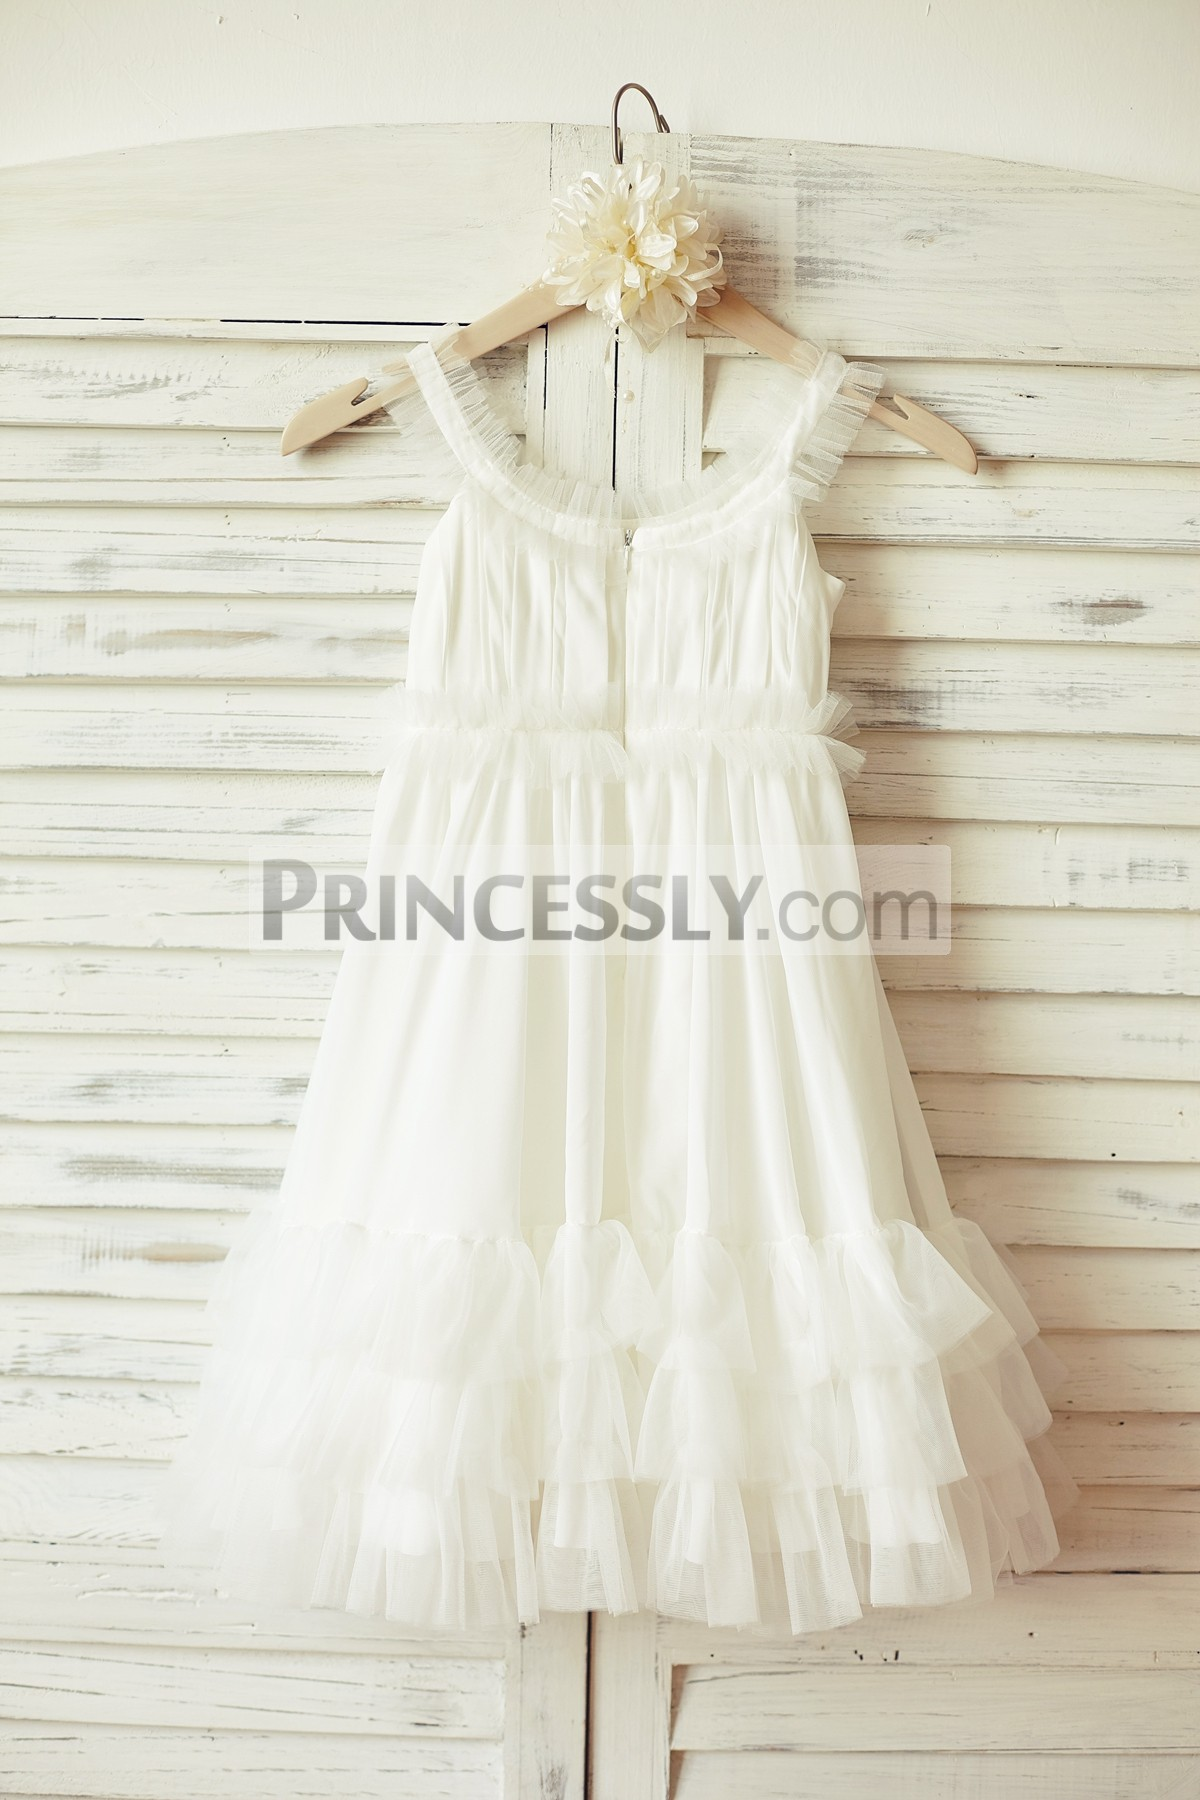 Ivory chiffon wedding baby girl dress with ivory tulle ruffles